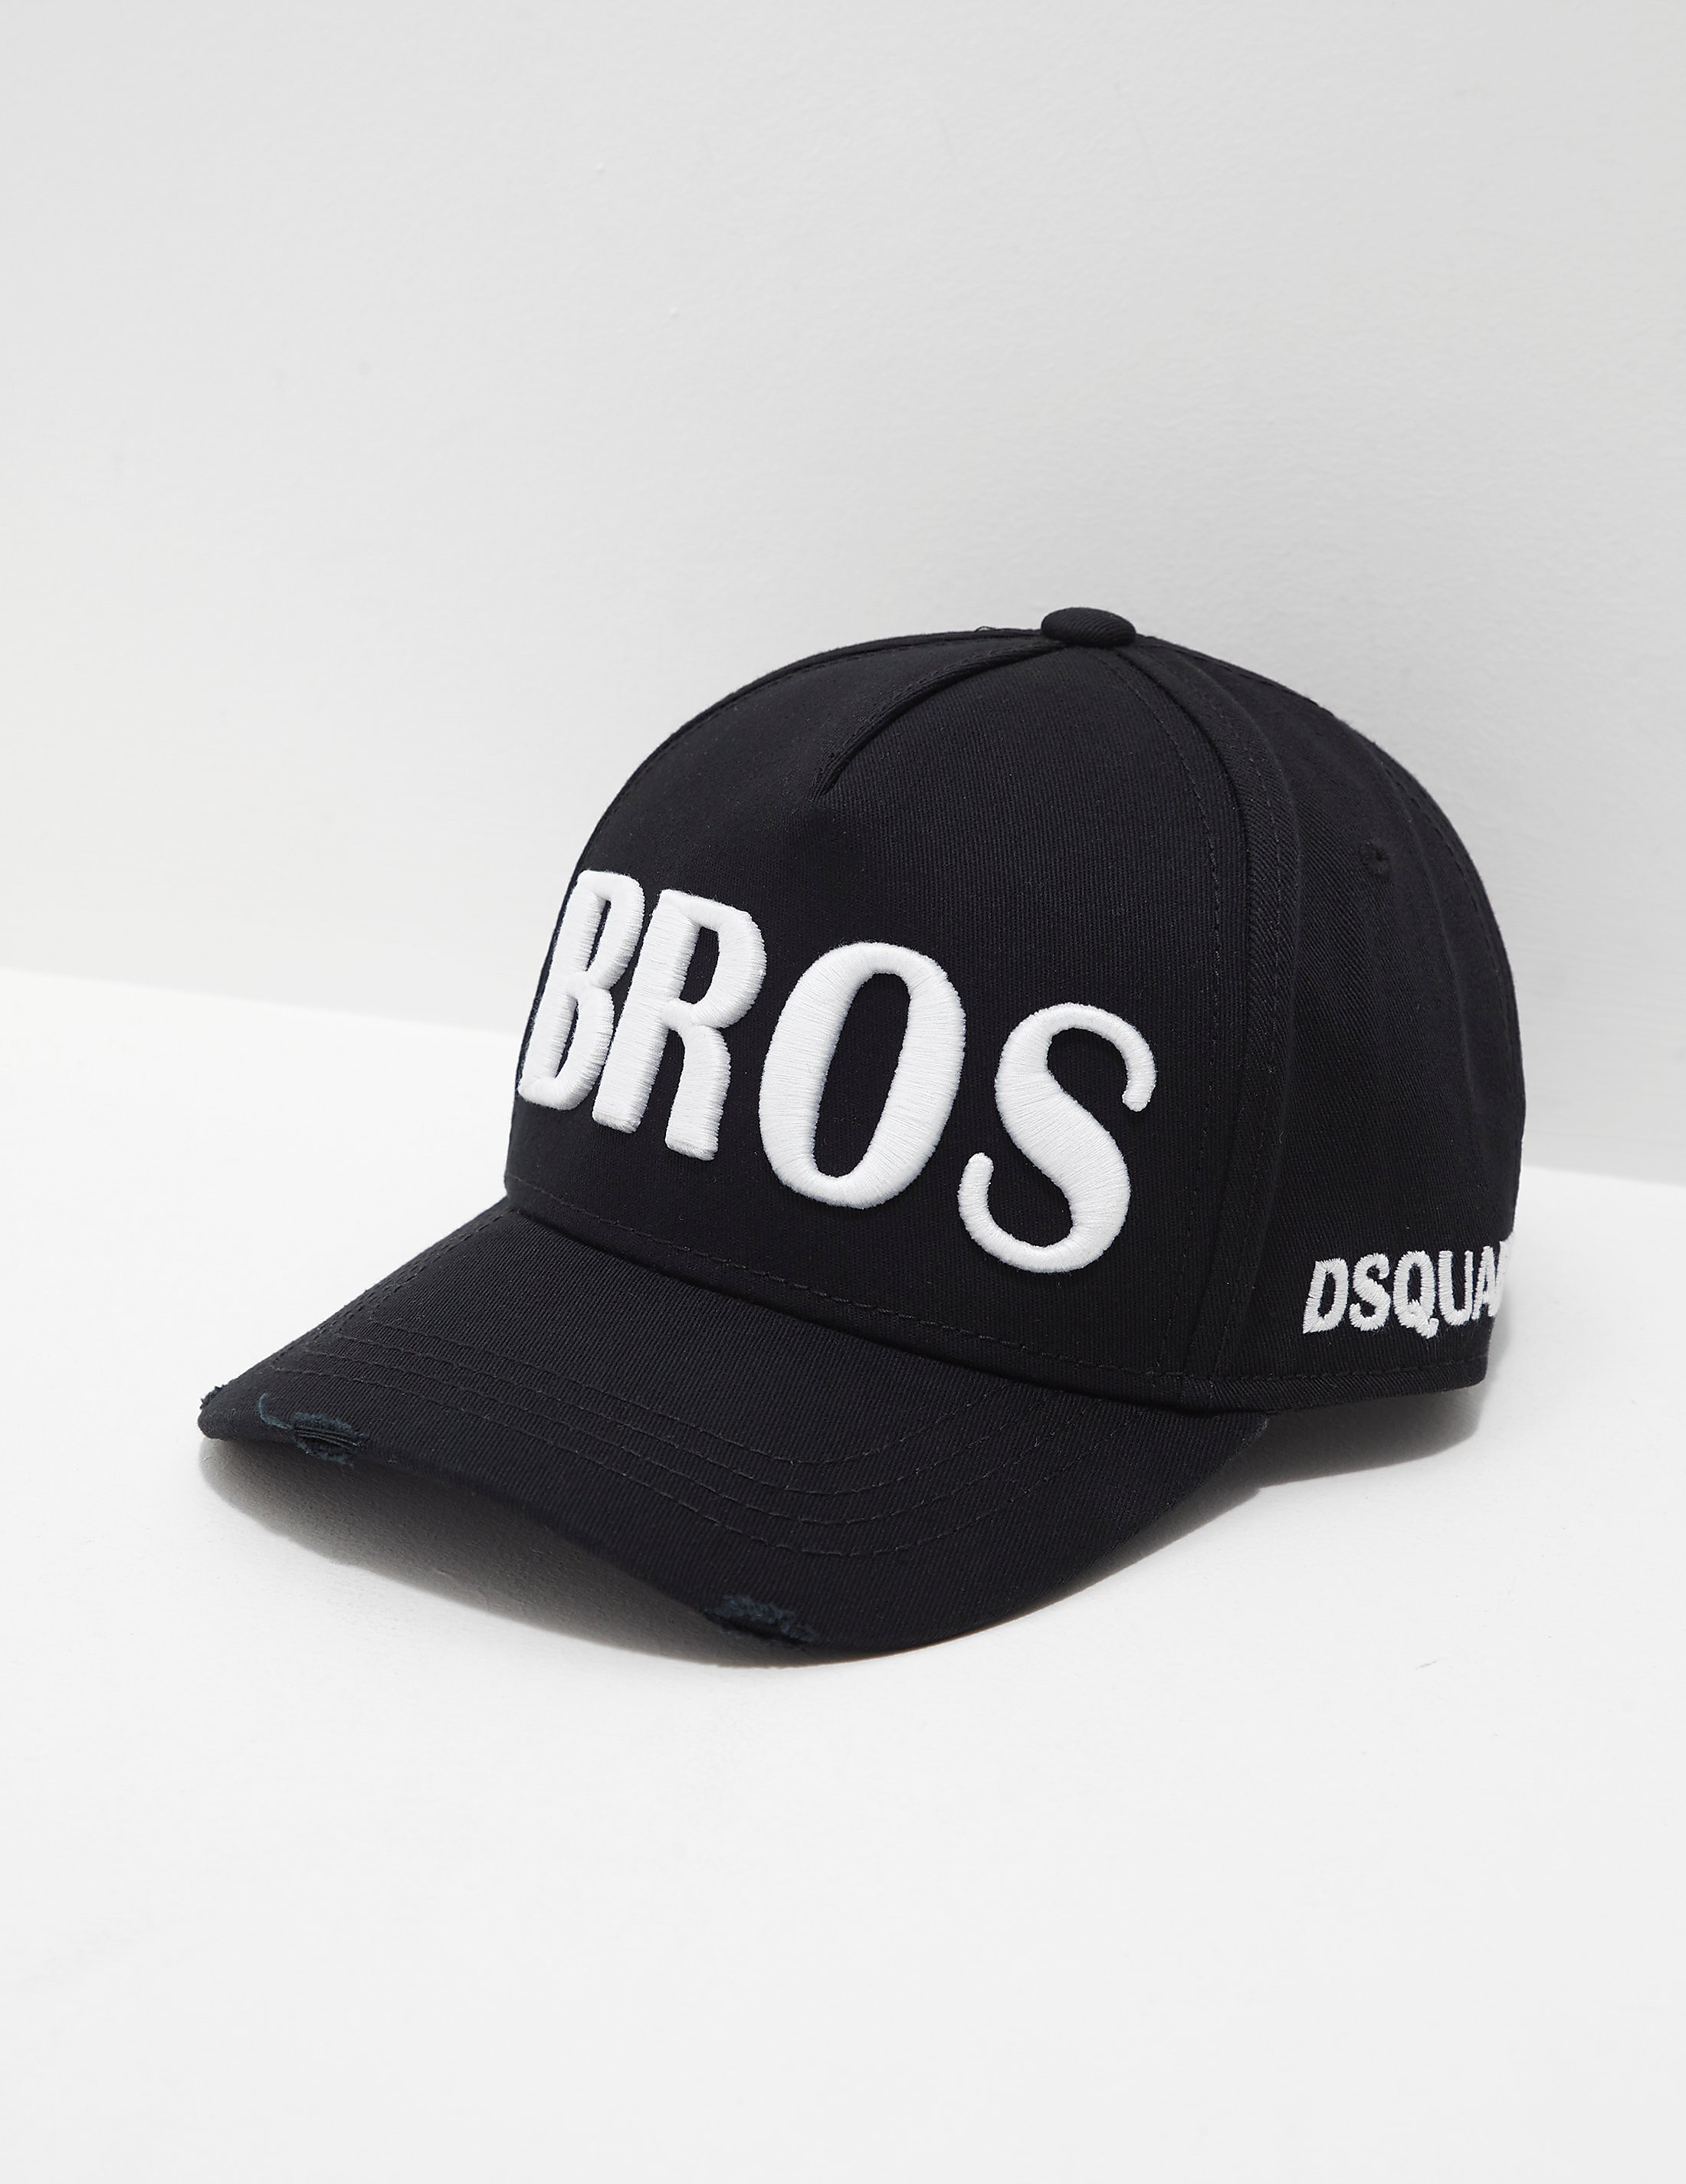 Dsquared2 Bros Cap